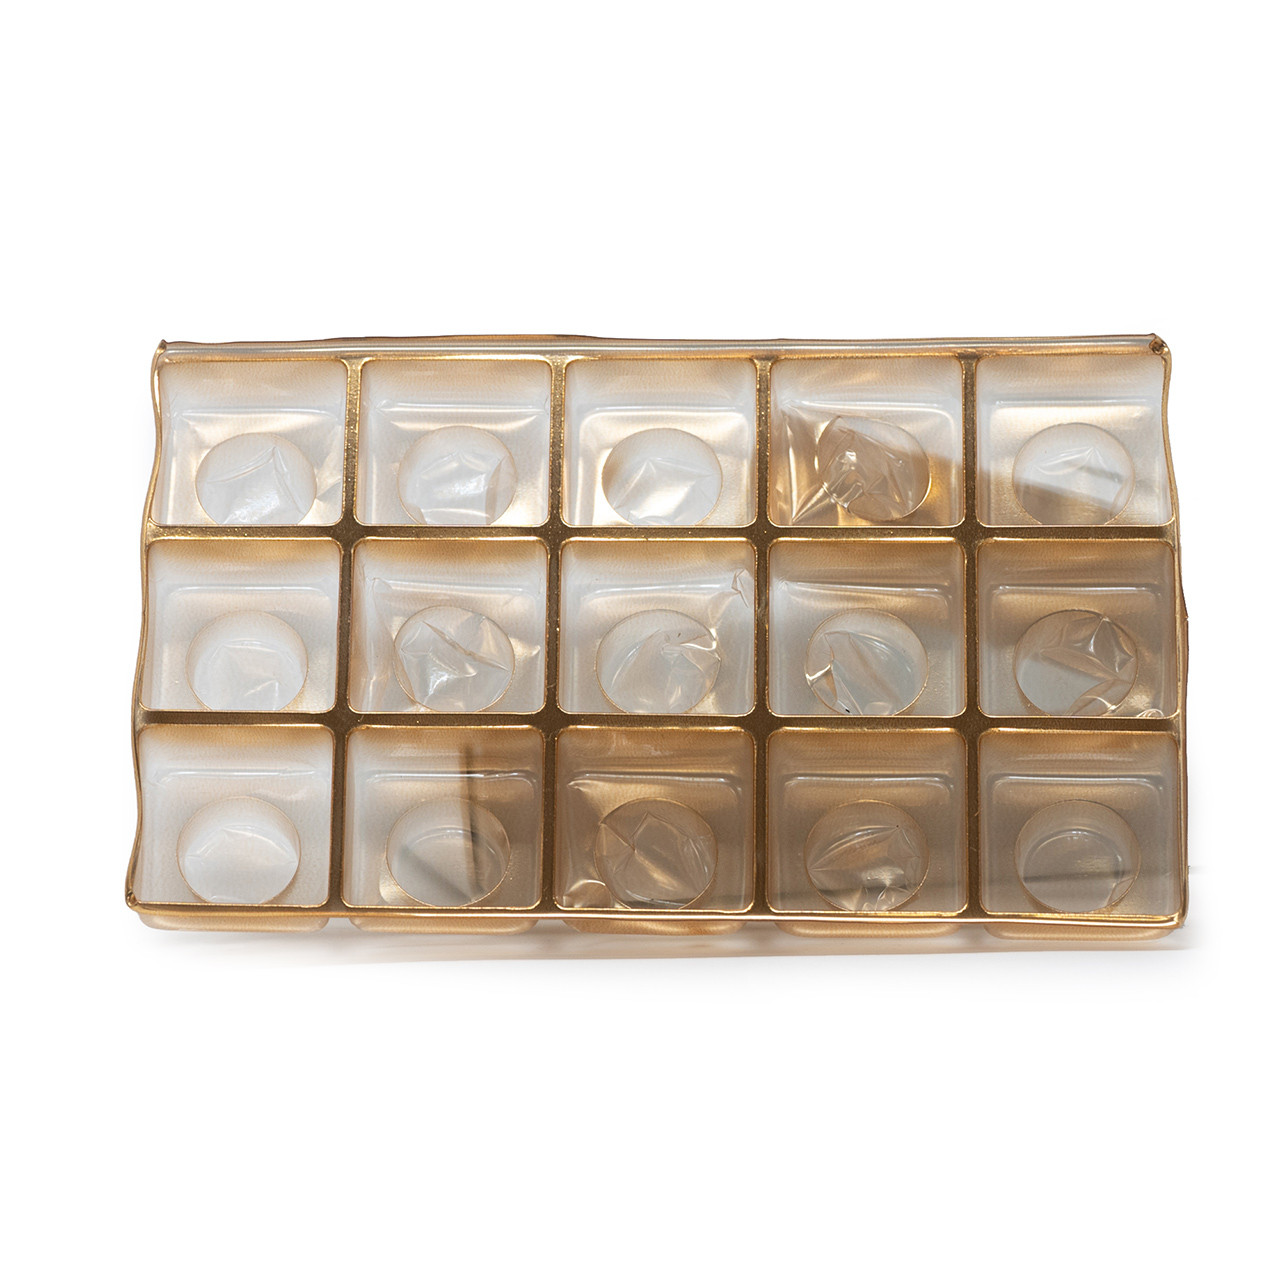 Candy box holds 15 pieces - tray